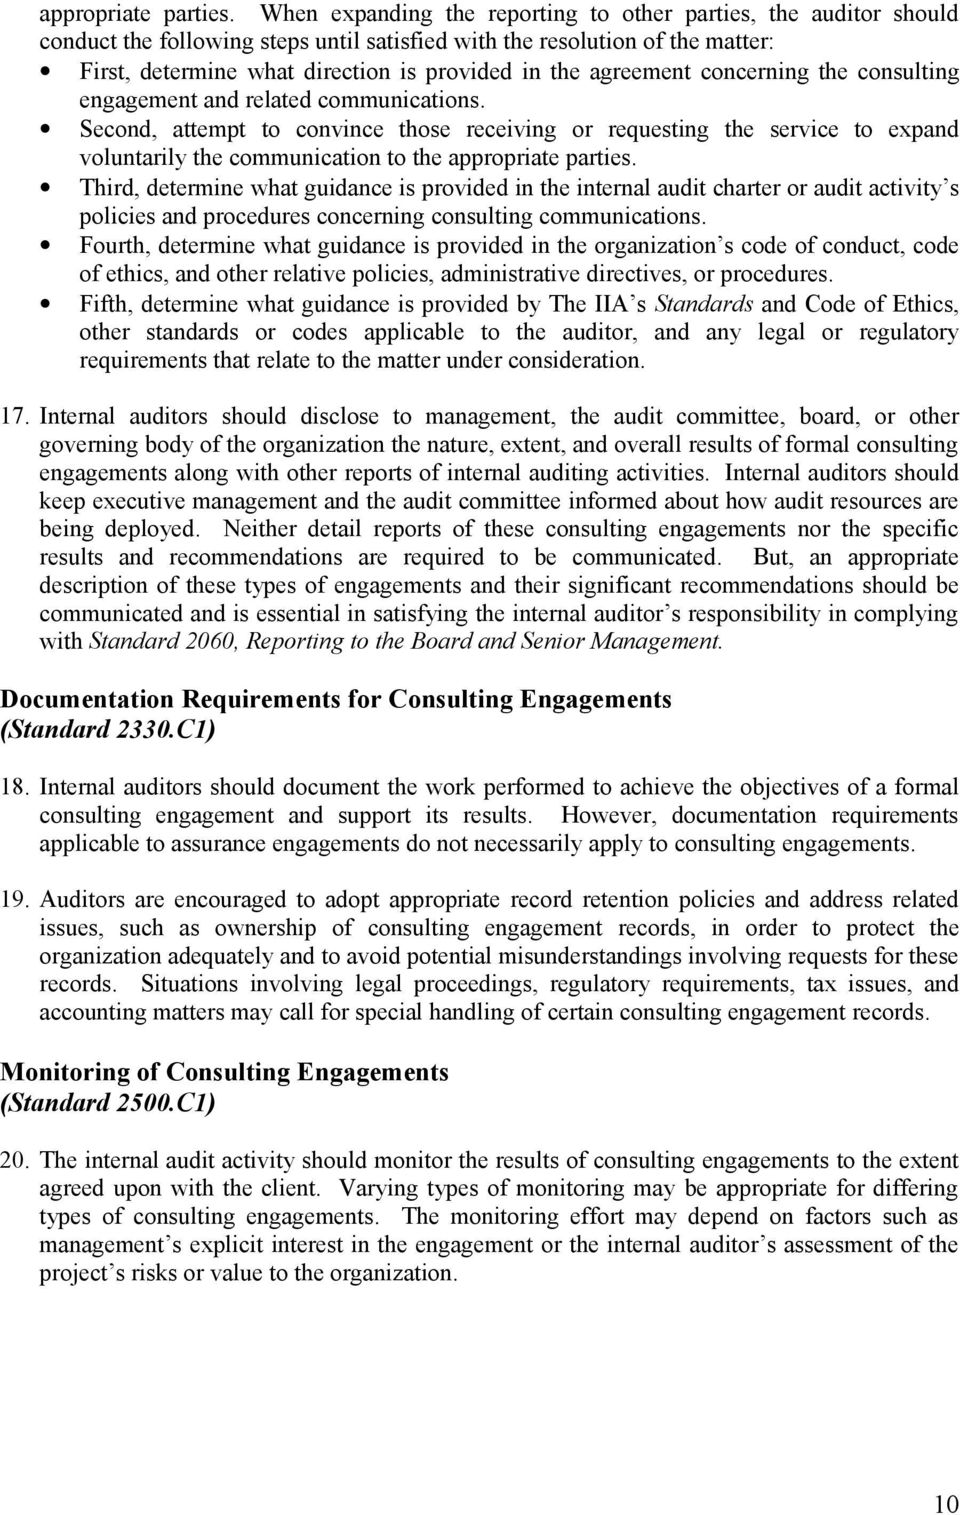 agreement concerning the consulting engagement and related communications.